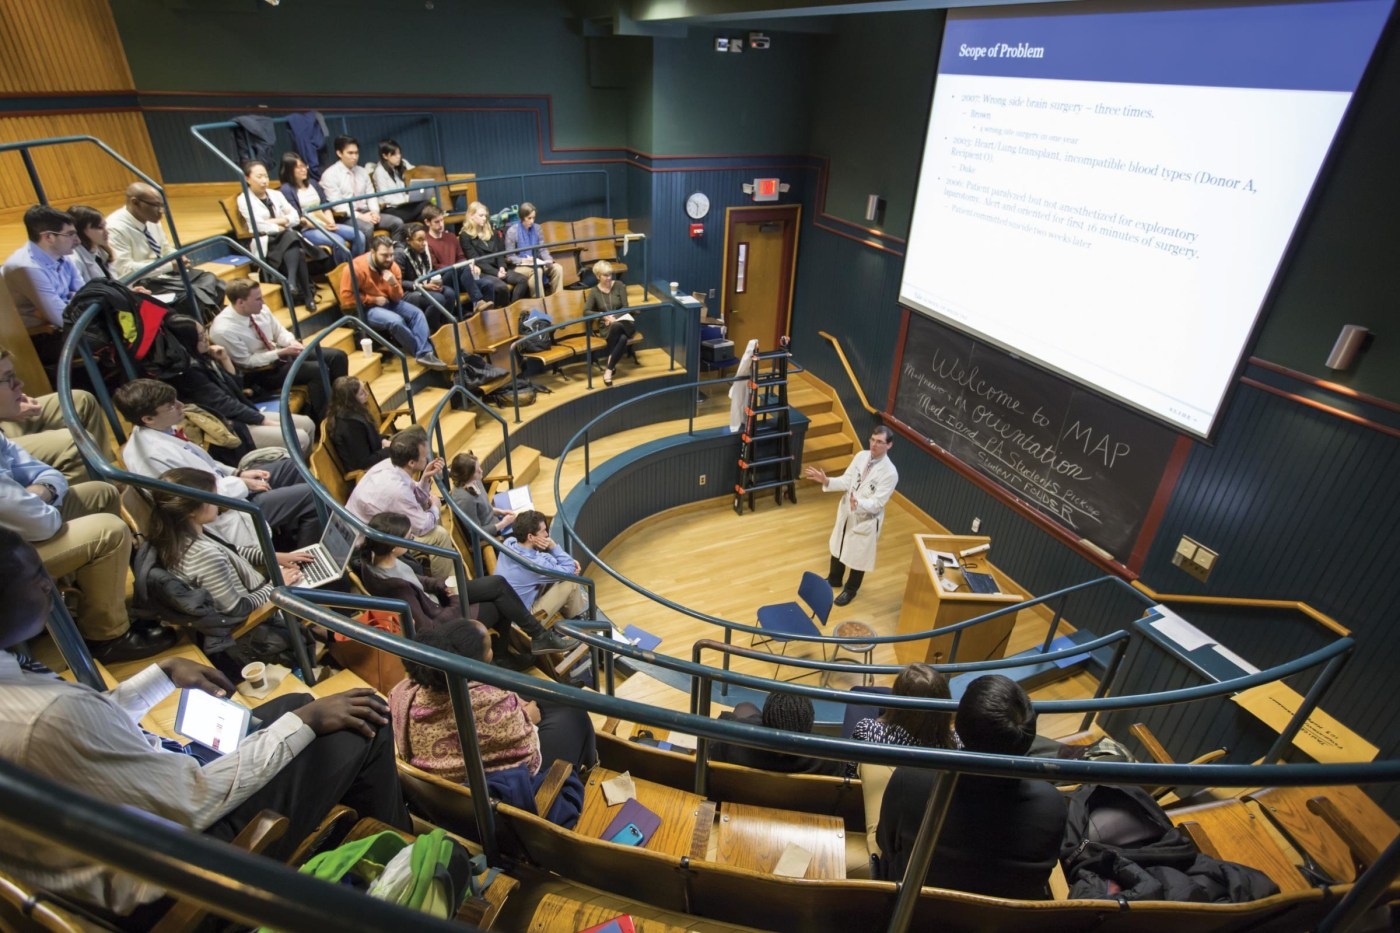 Robert Fogerty, an assistant professor of medicine, discussed cases of medical errors with third-year students as they began a new clerkship in March